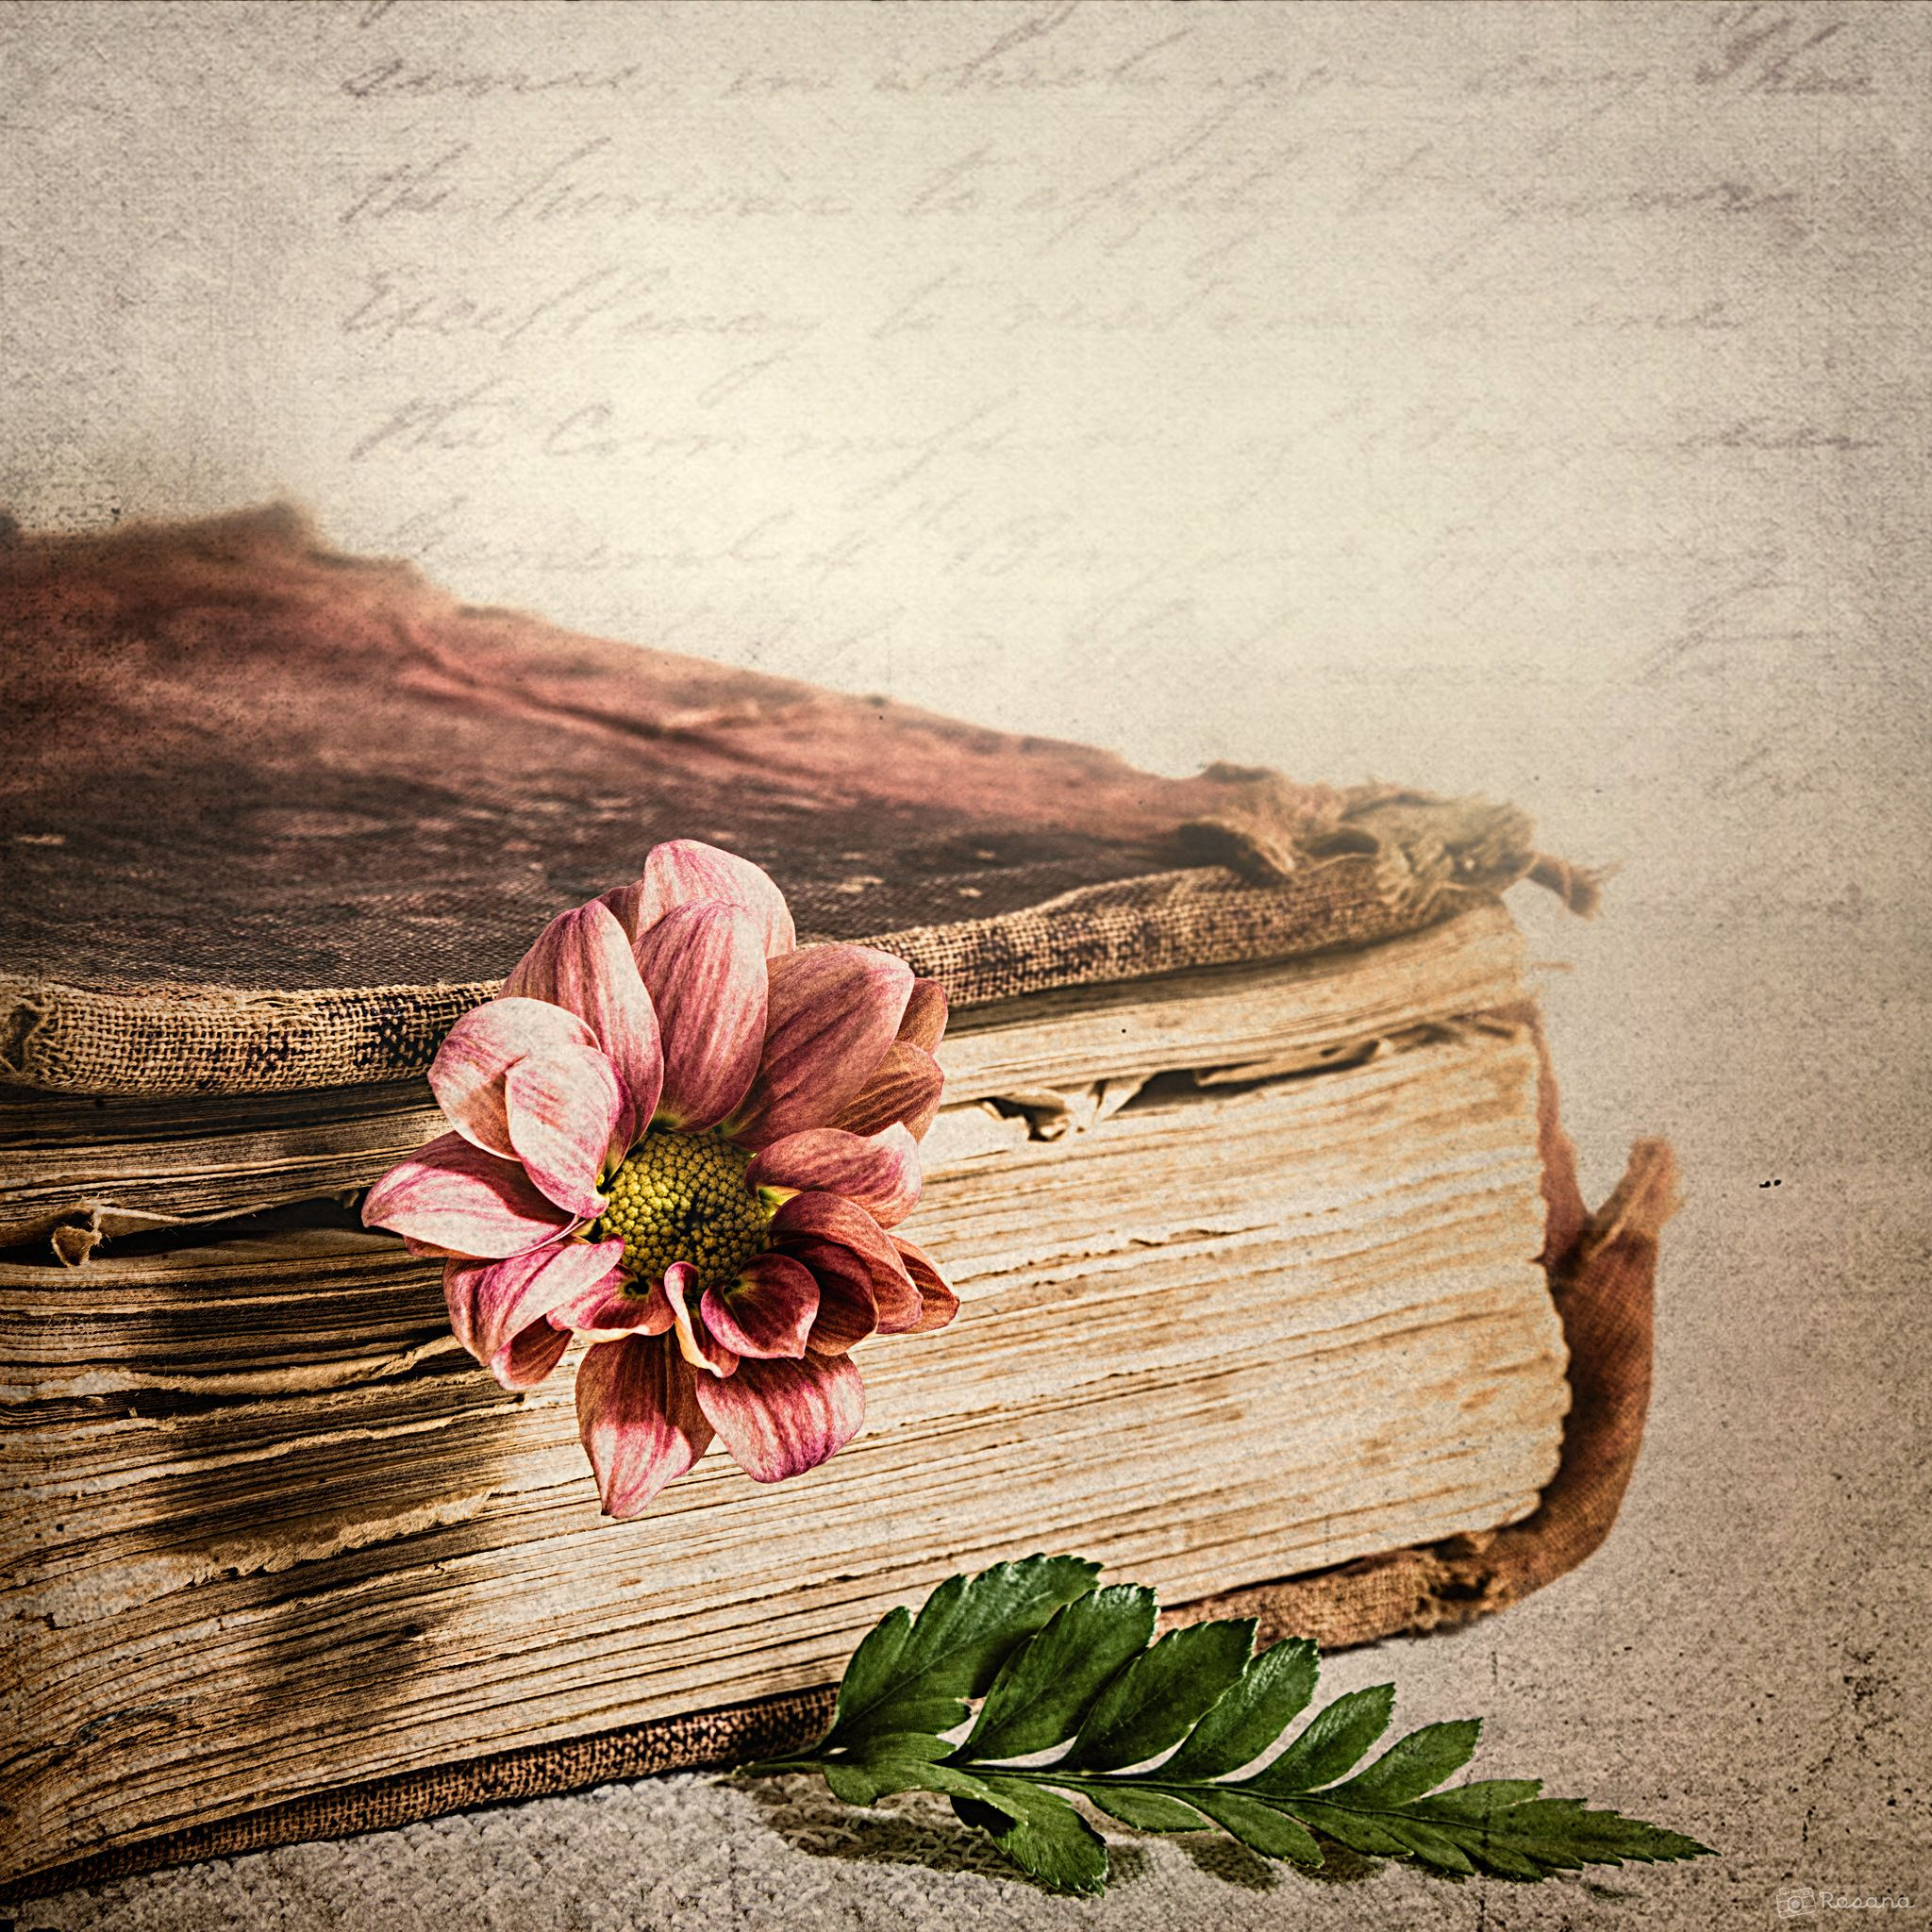 The Old Book Book Flowers Old Books Book Photography